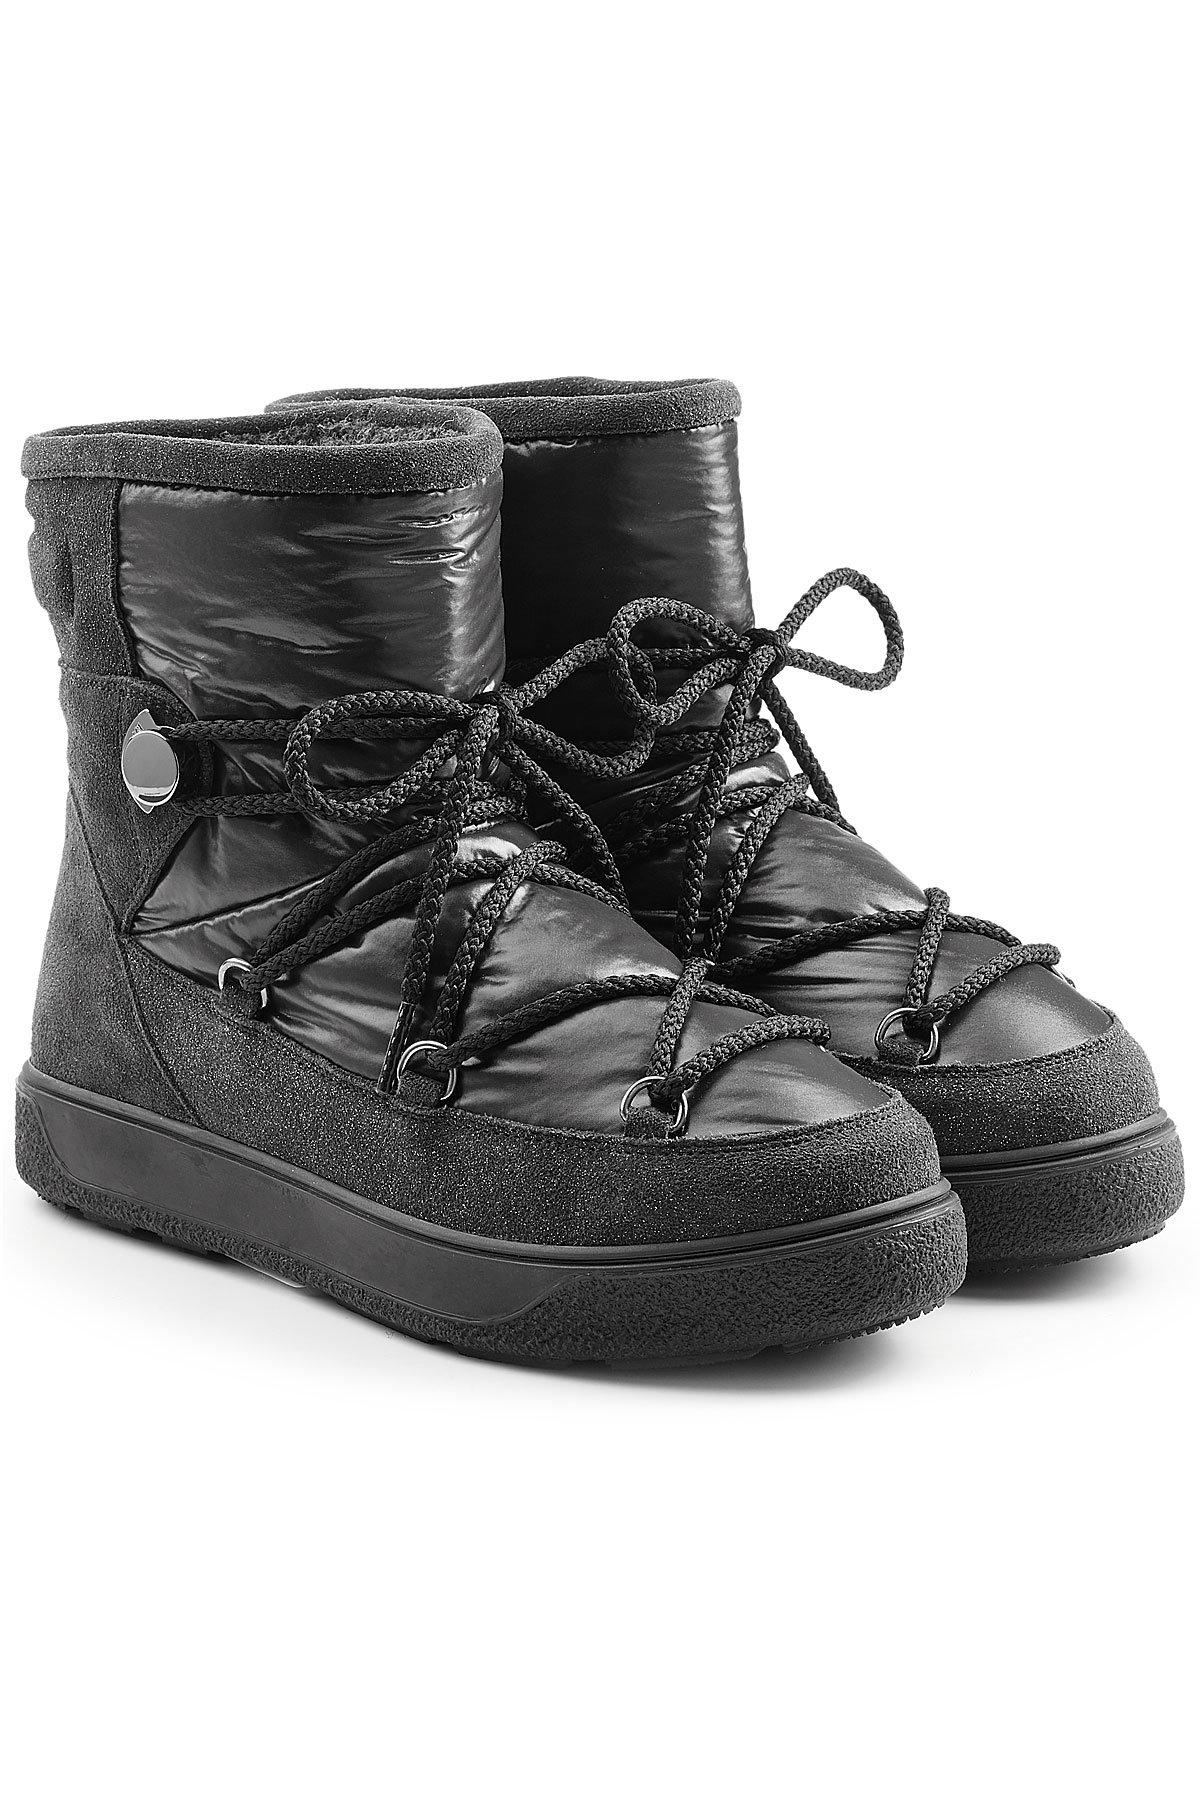 Moncler New Fanny Quilted Ankle Boots With Suede In Black